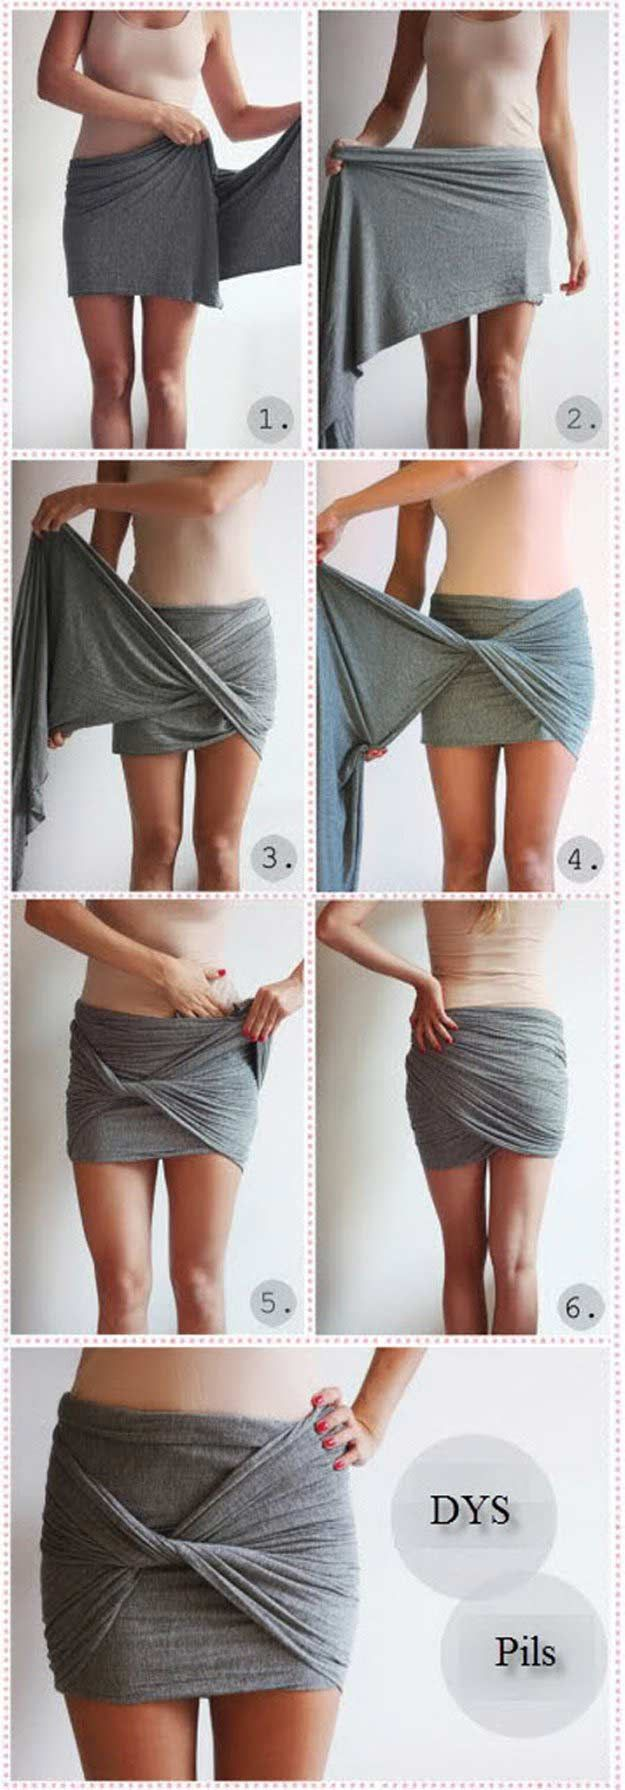 DIY Draped Skirt | DIY Skirts and Pants for Women DIY Clothes